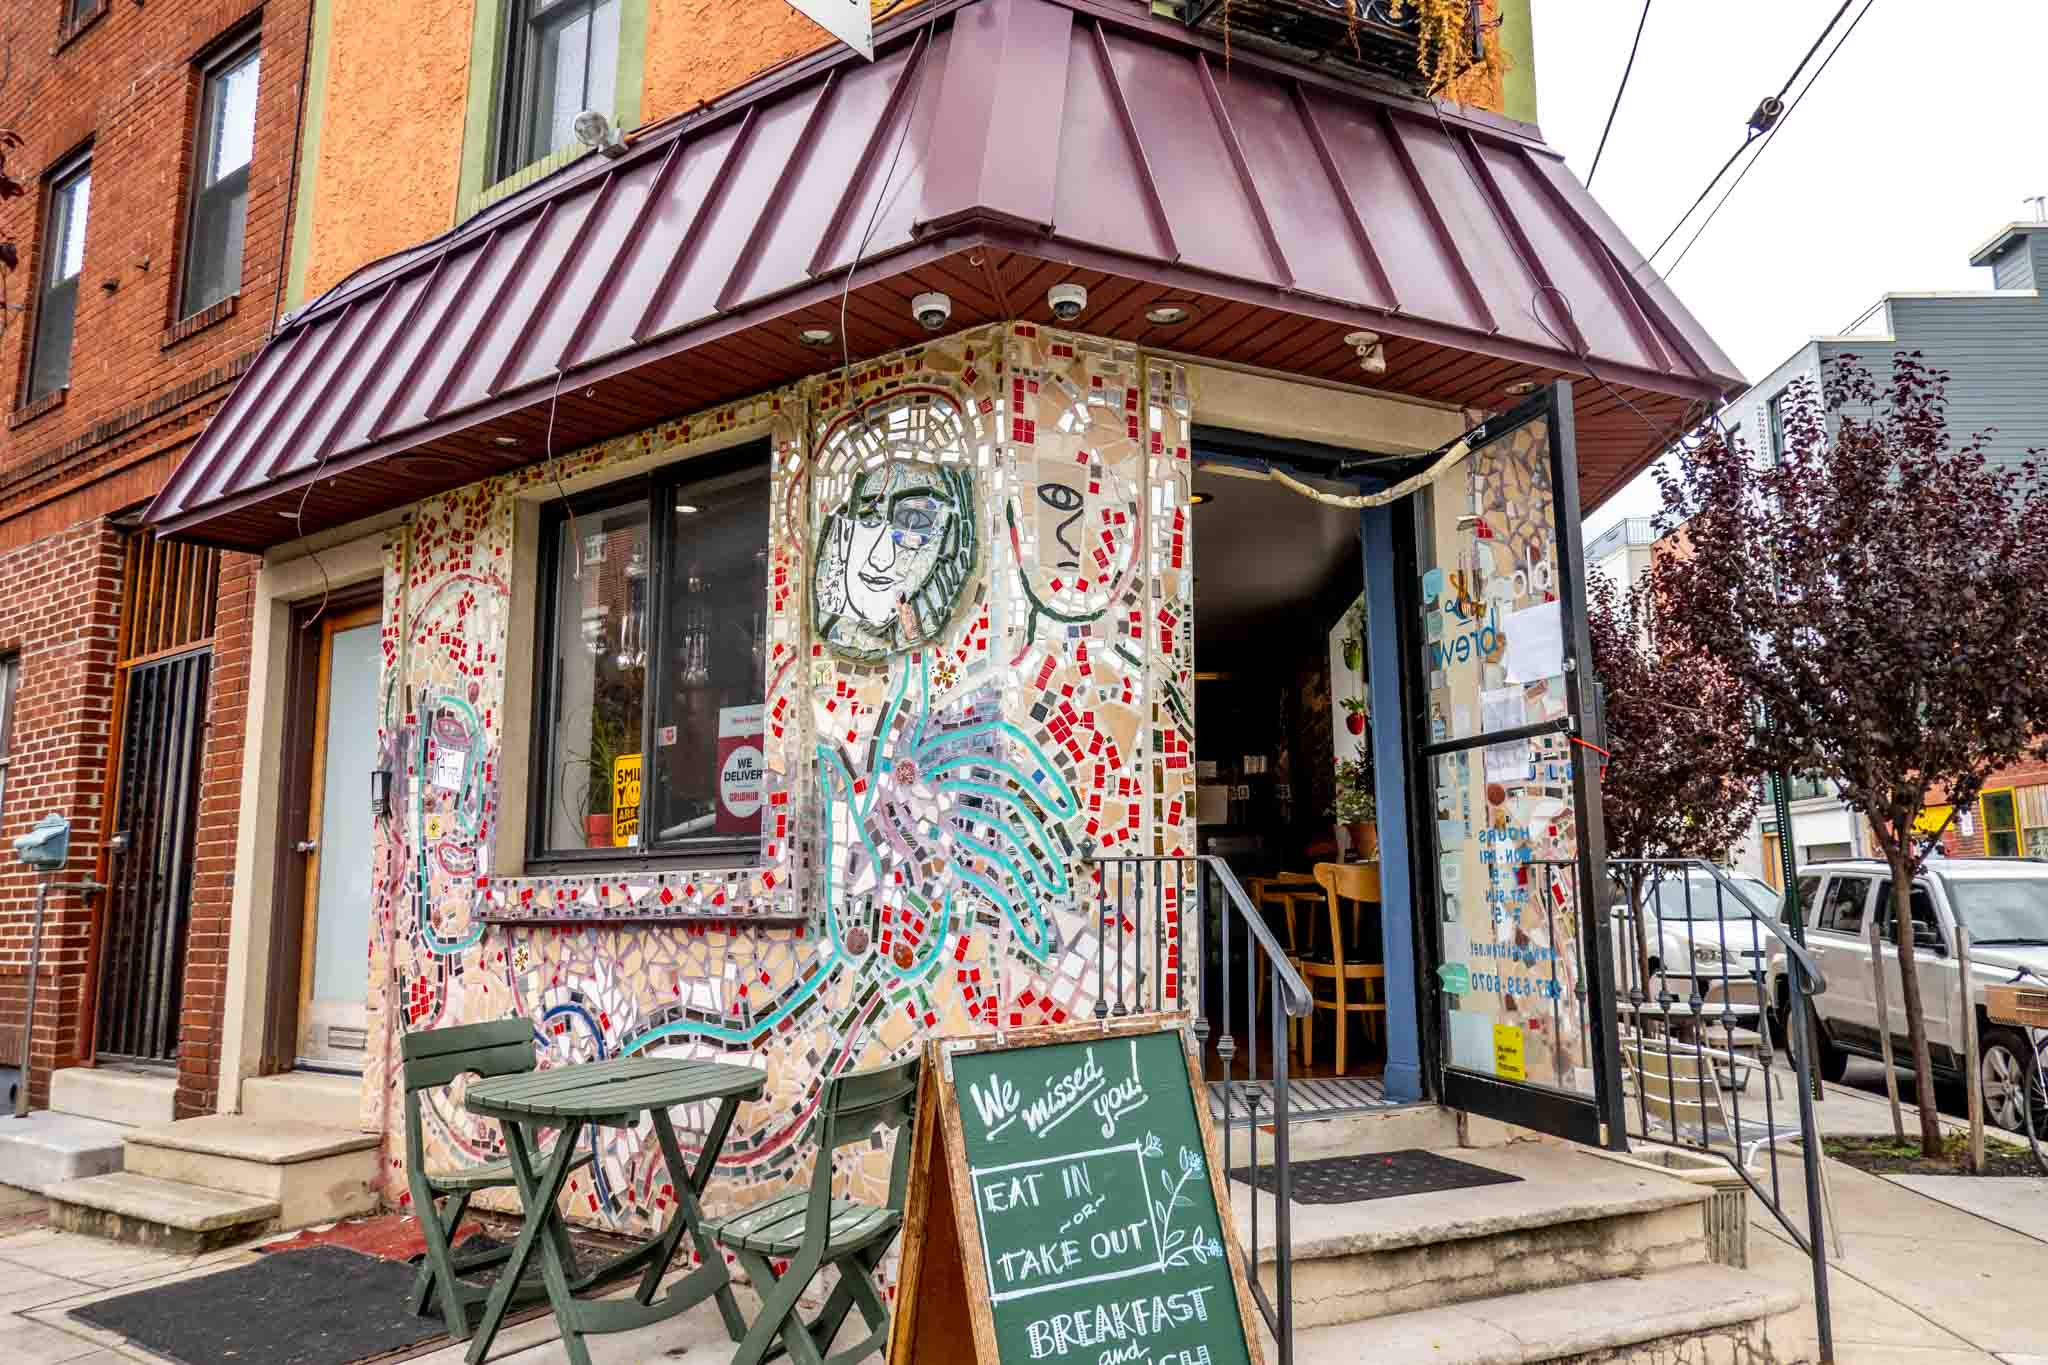 Cafe exterior covered in multi-colored mosaic tiles